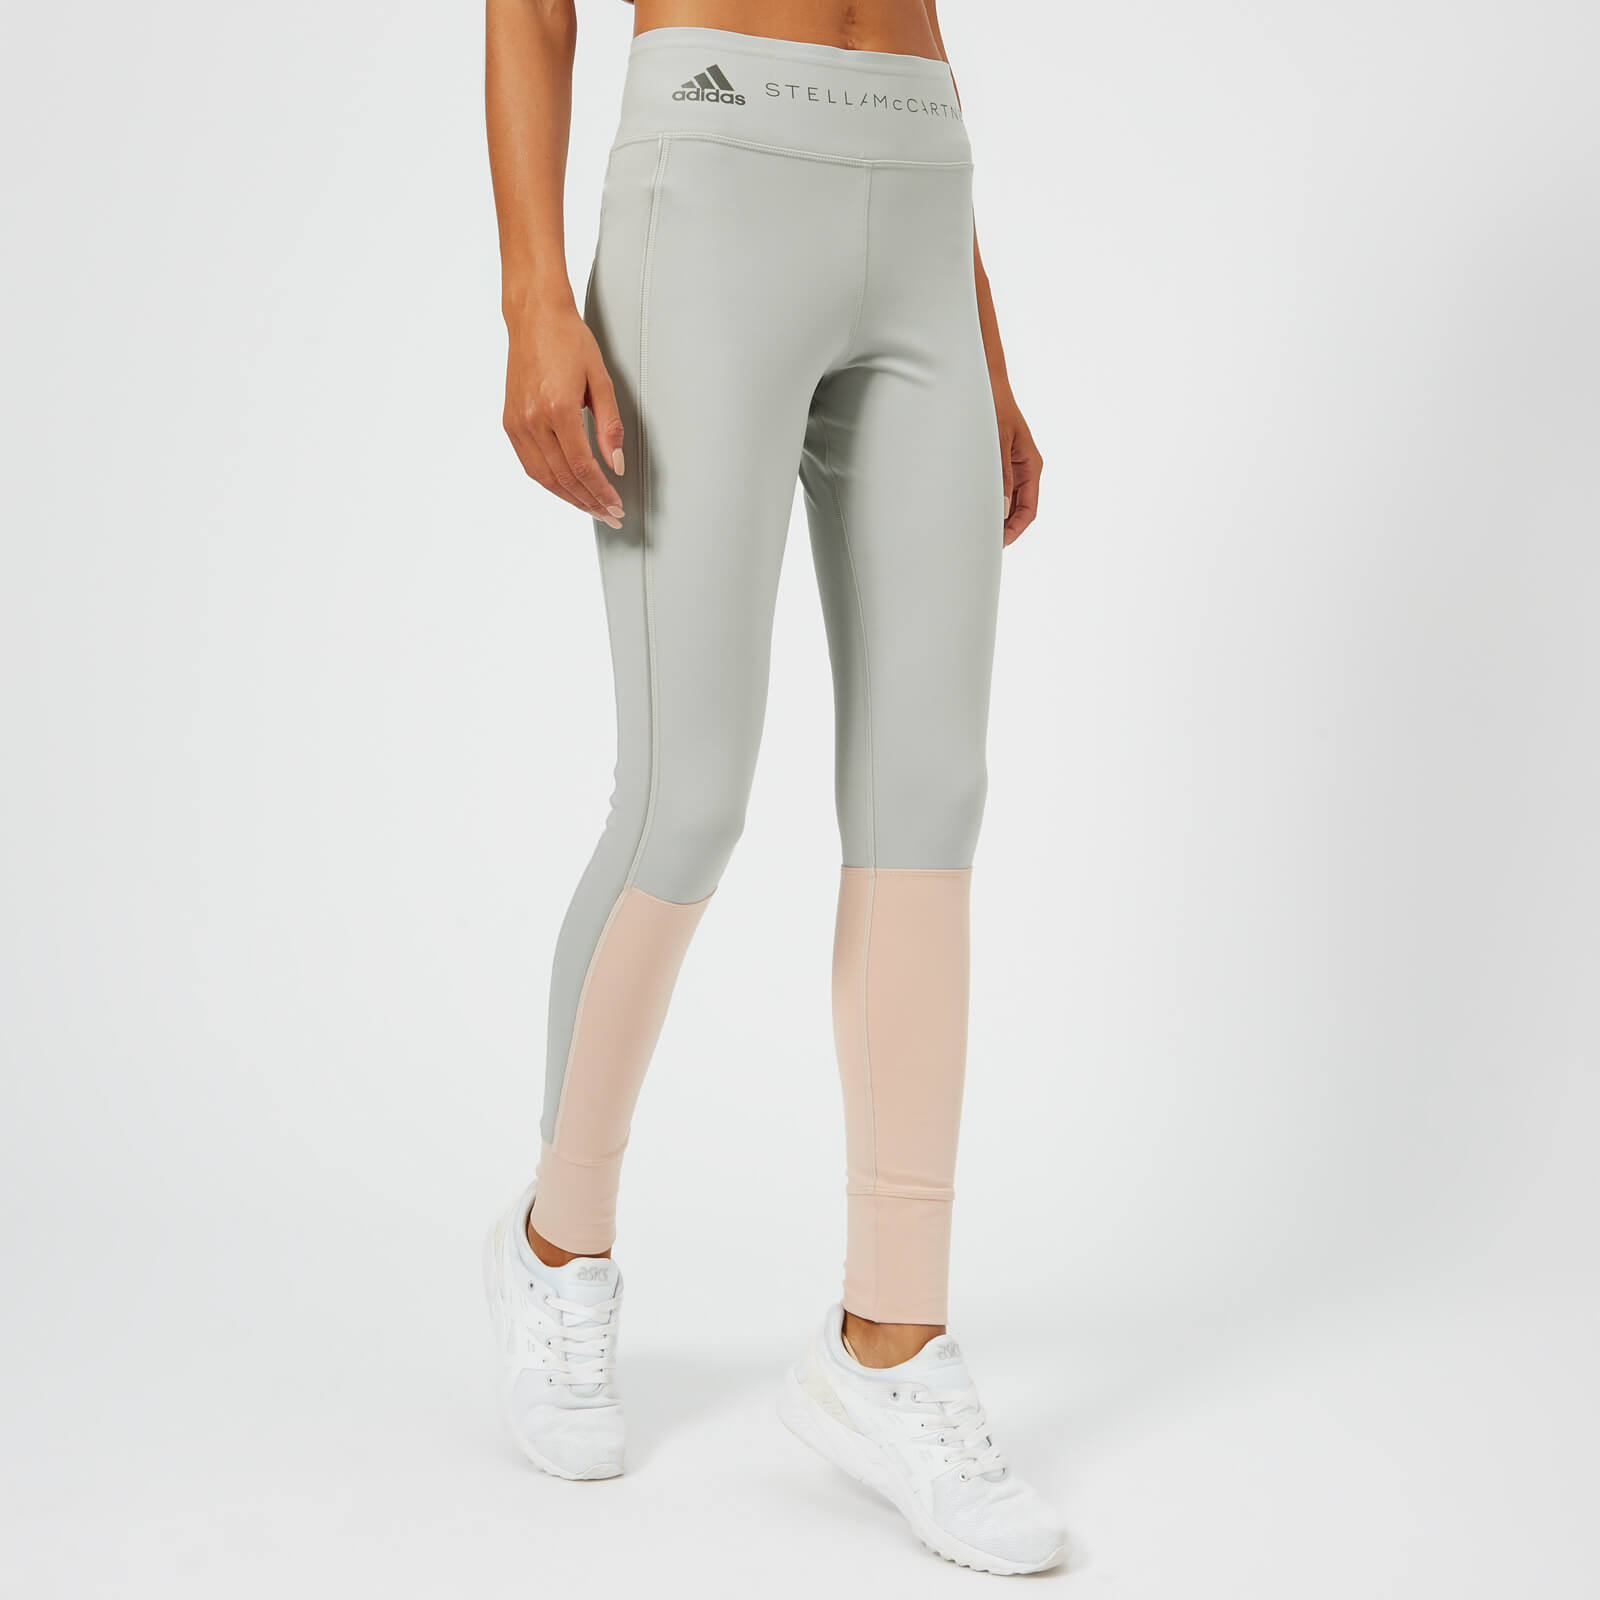 33d17a6fcfc373 adidas by Stella McCartney Women's Yoga Comfort Tights - Pearl Rose/Stone -  Free UK Delivery over £50